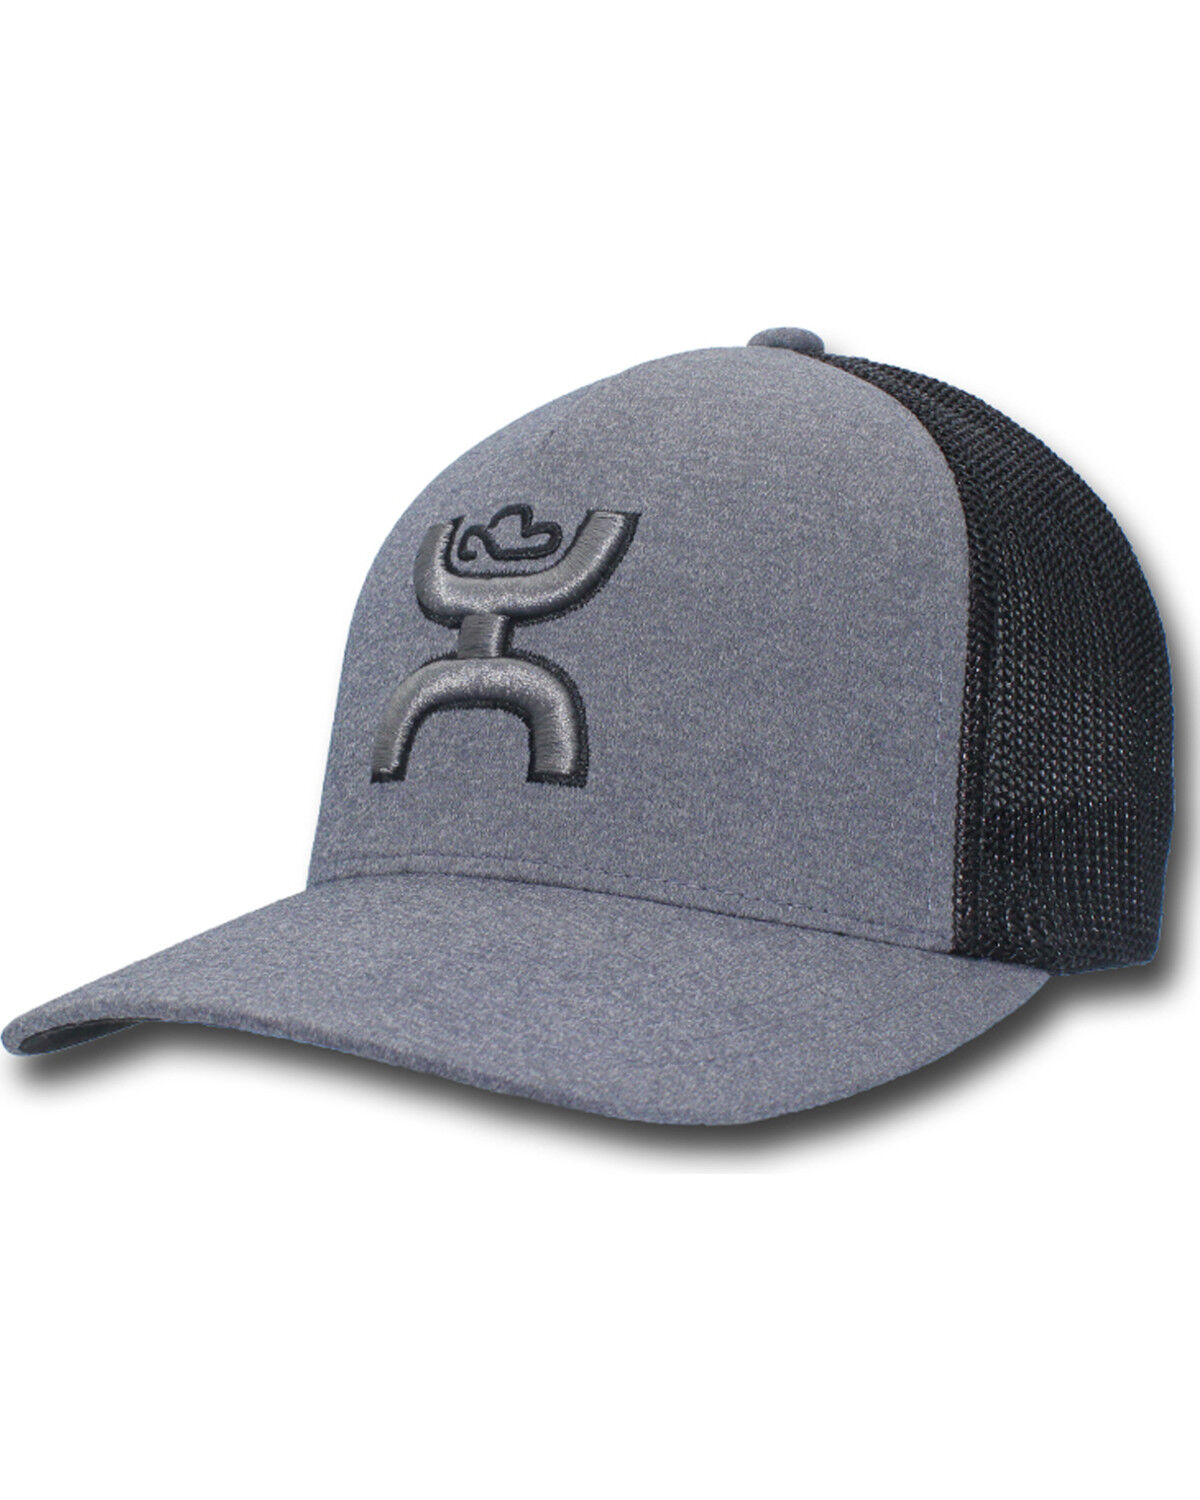 super popular fbb5a f6168 ... new arrivals hooey mens coach flexfit mesh trucker cap multi hi res  f2d85 cc6fa